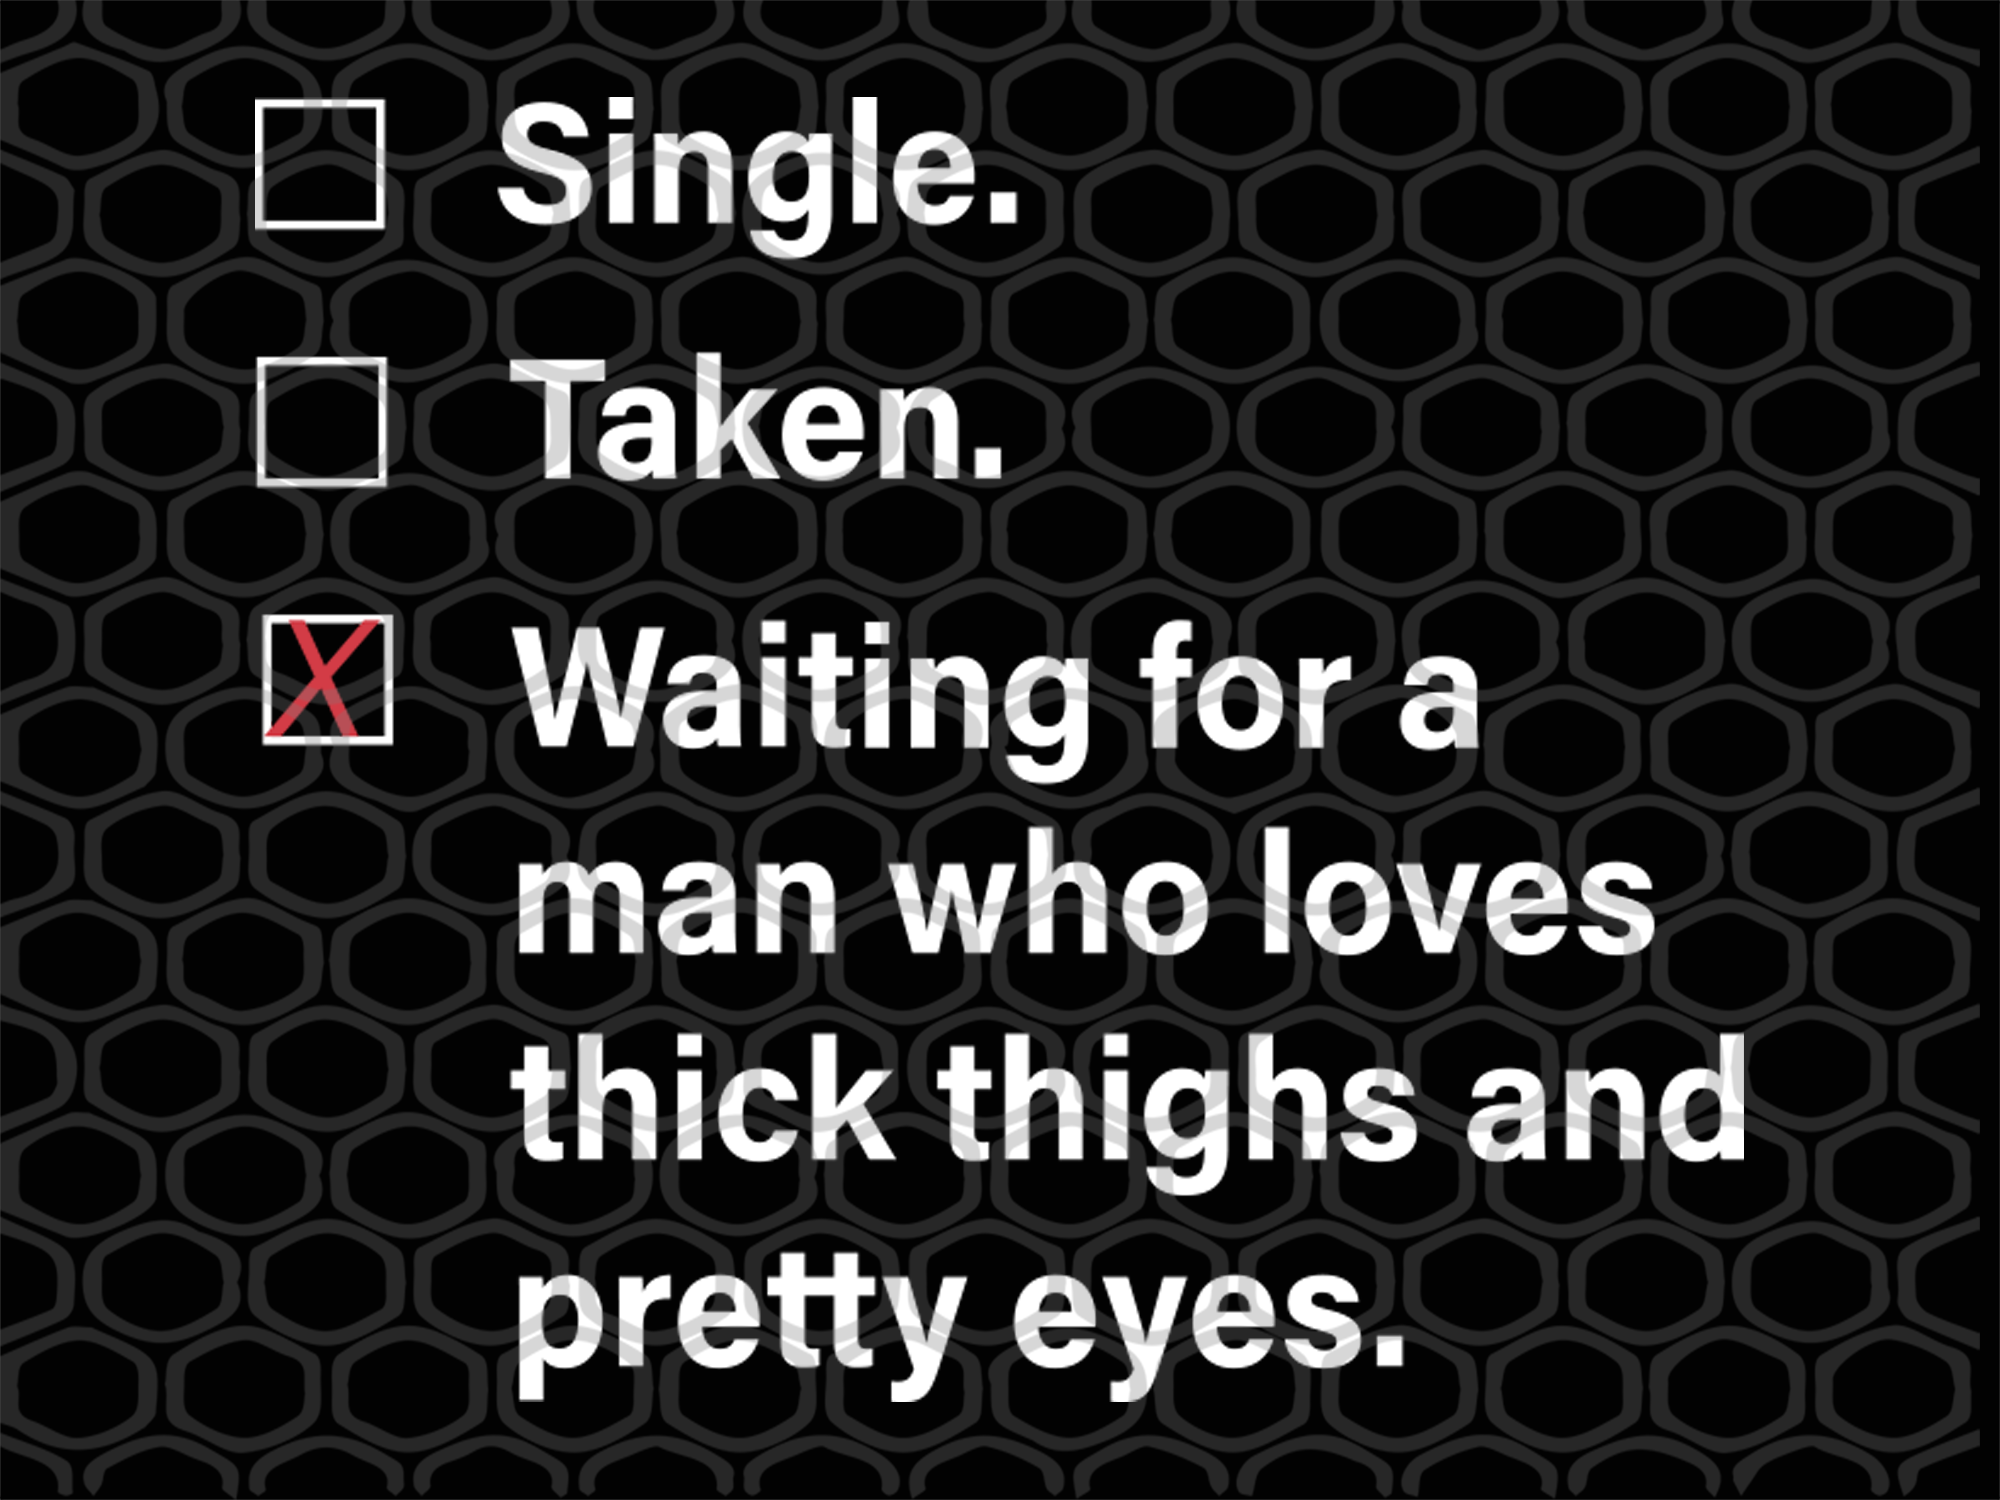 Single waiting for a man who loves thick thighs and pretty eyes, PNG, DXF, EPS, PDF, SVG